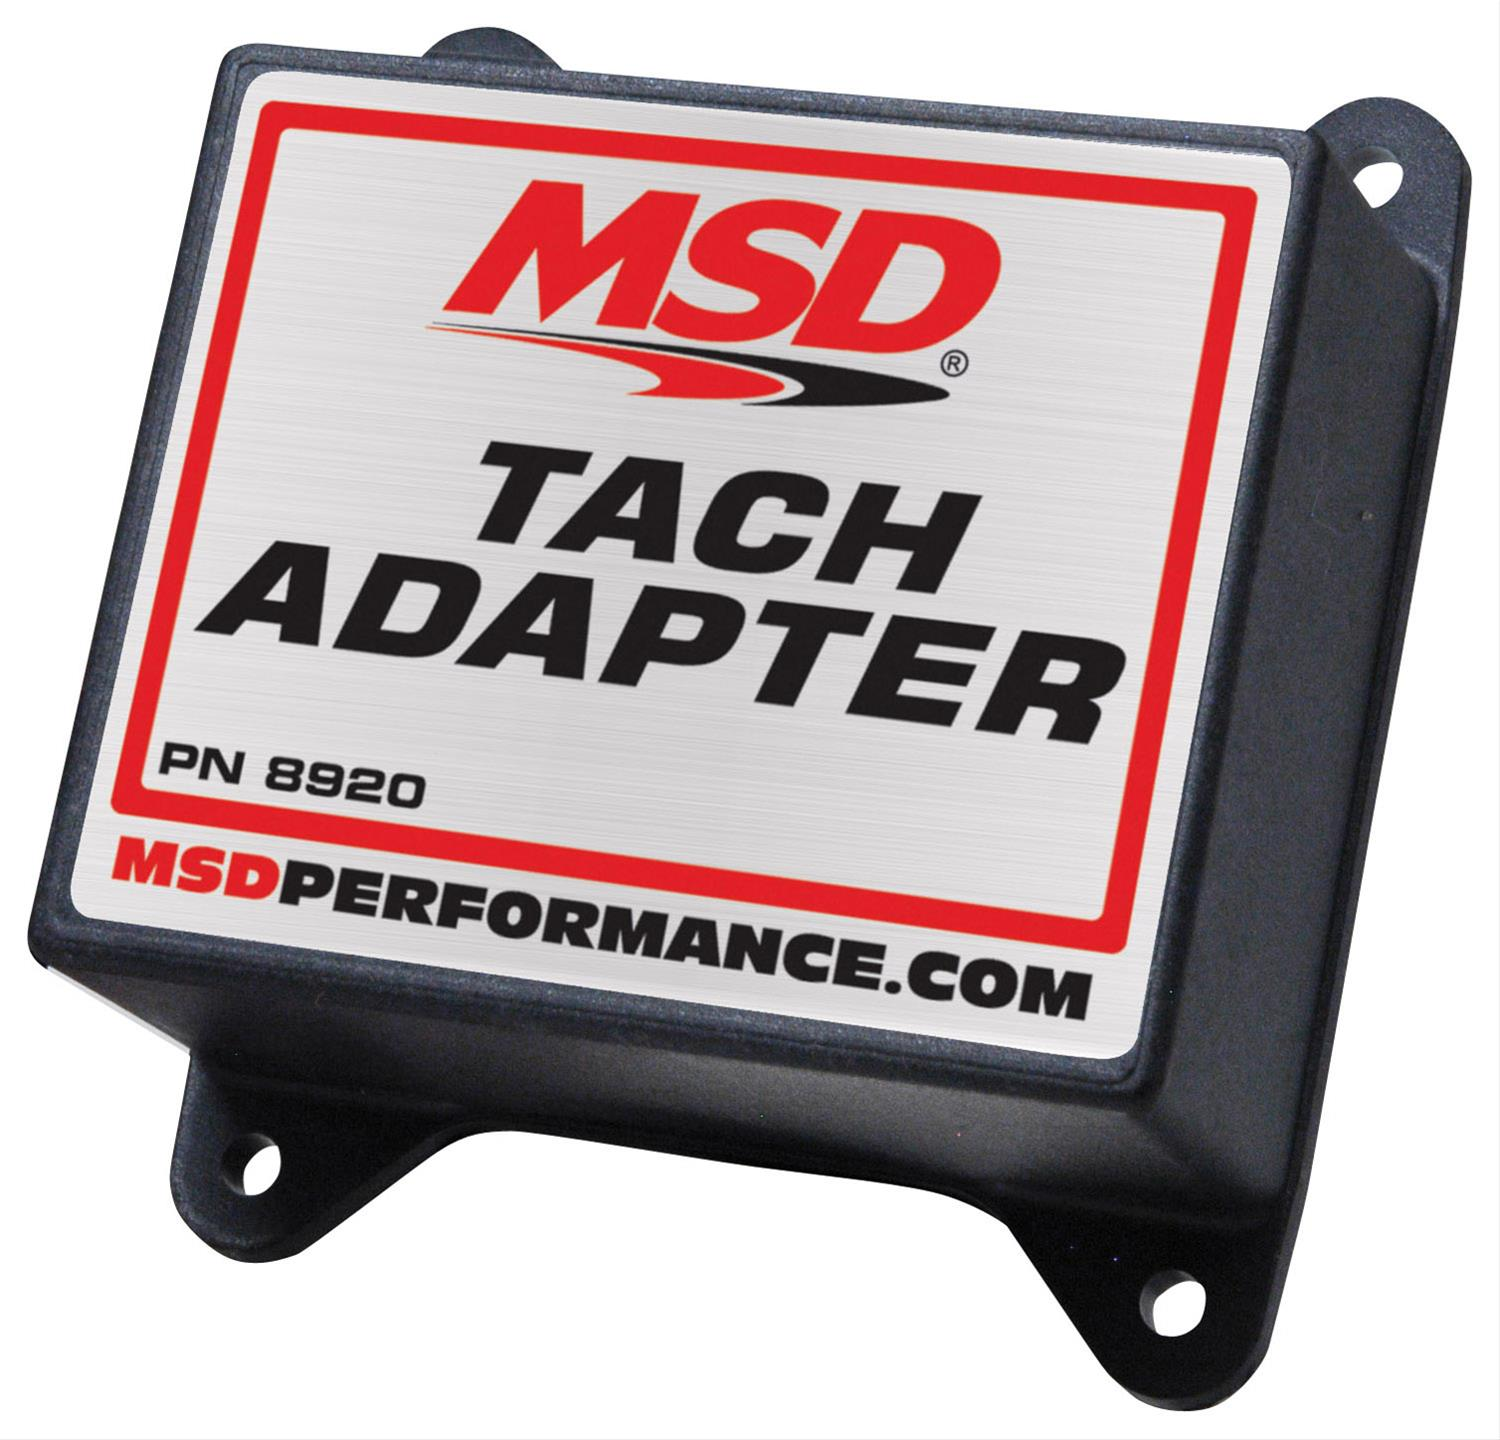 Msd Magnetic Pickup Tach Adapters 8920 Free Shipping On Orders 1948 Studebaker Wiring Diagram Over 49 At Summit Racing